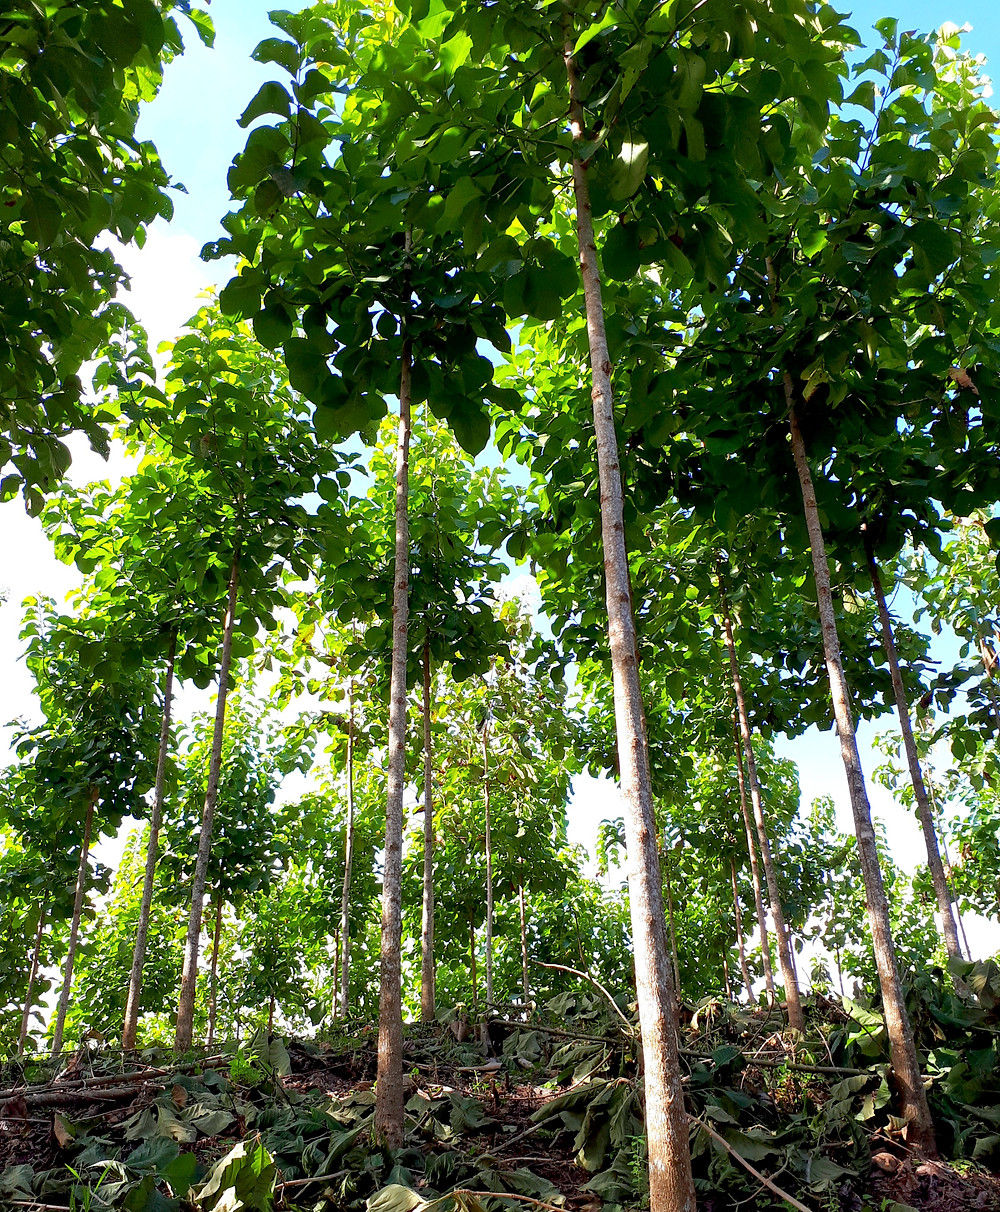 Rows of teak trees within the Nicaforest plantation.